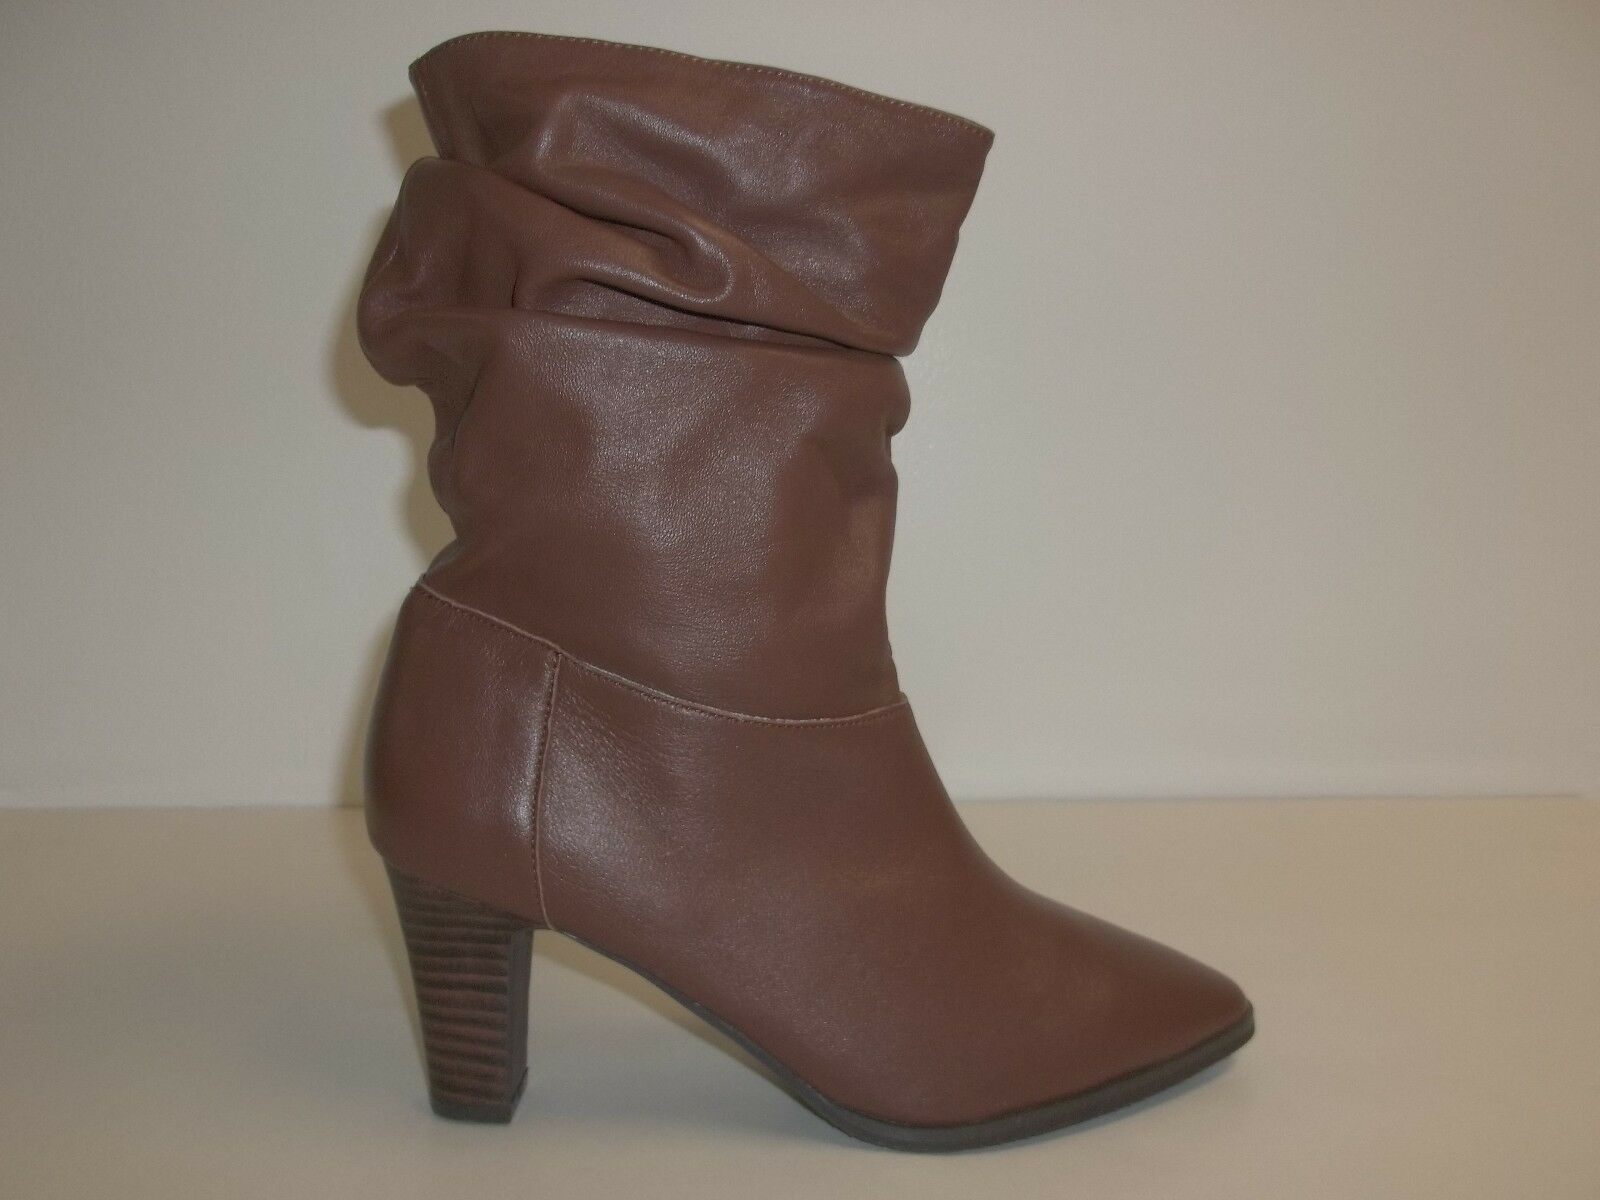 Adrianna Papell Size 8 M NOELLE Brown Leather Mid Calf Boots New Womens Shoes